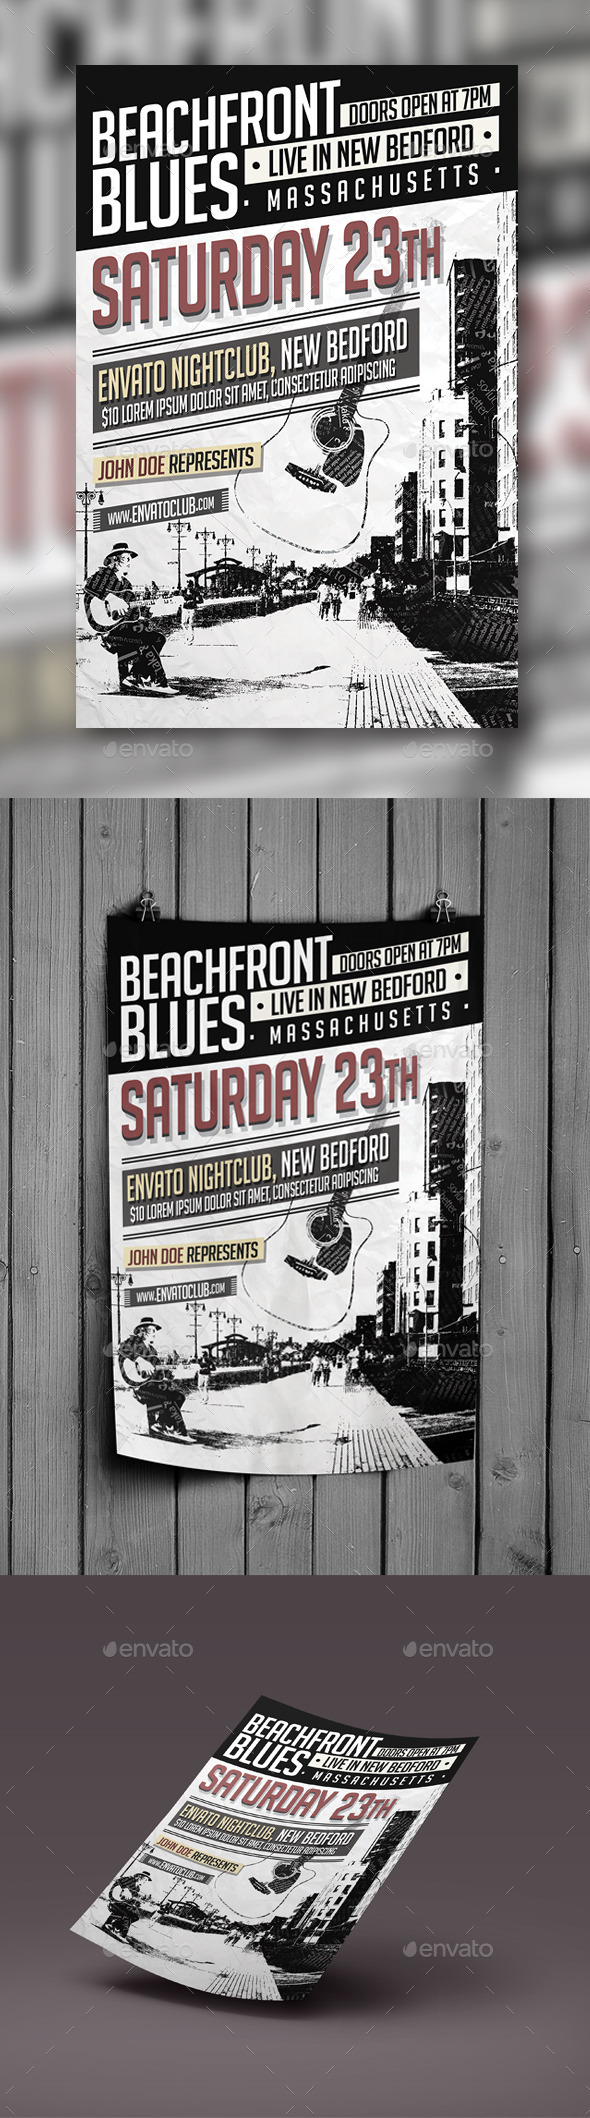 Beachfront Blues Flyer